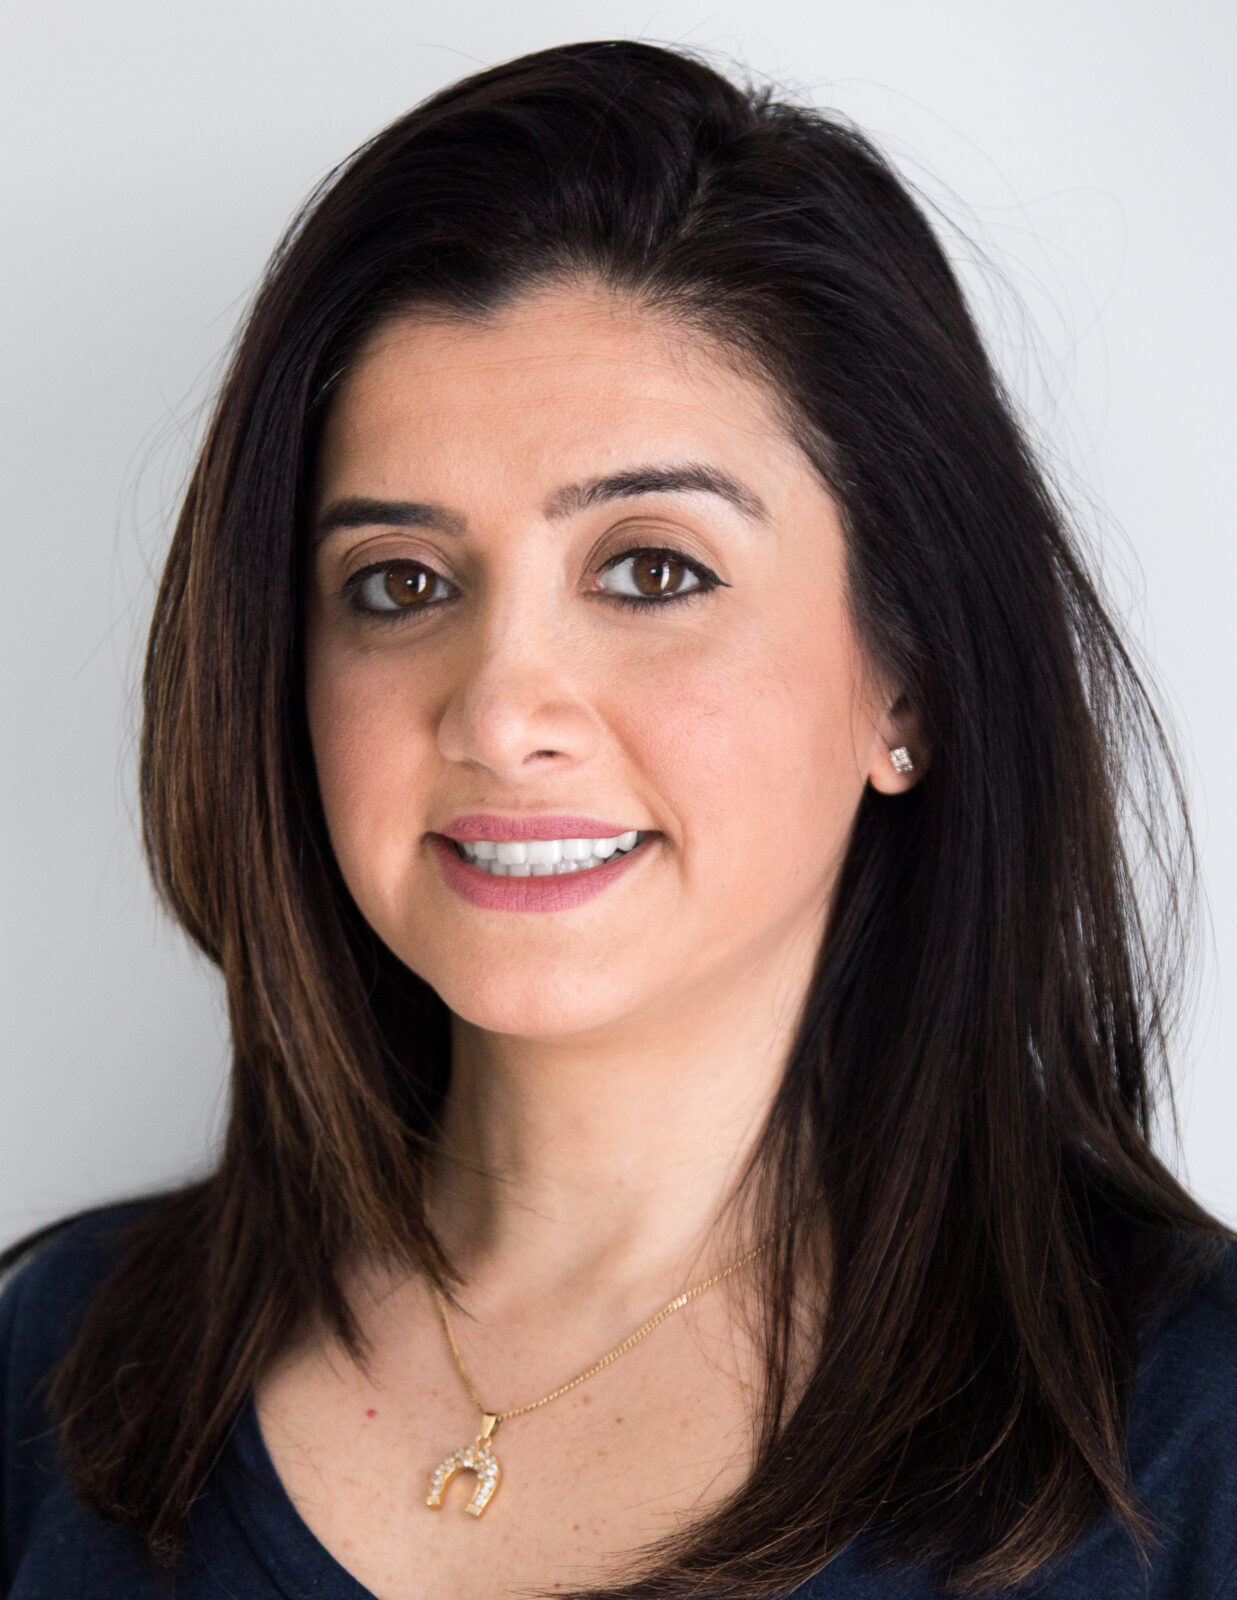 05 - Aniseh Sharifi - Sales + Marketing